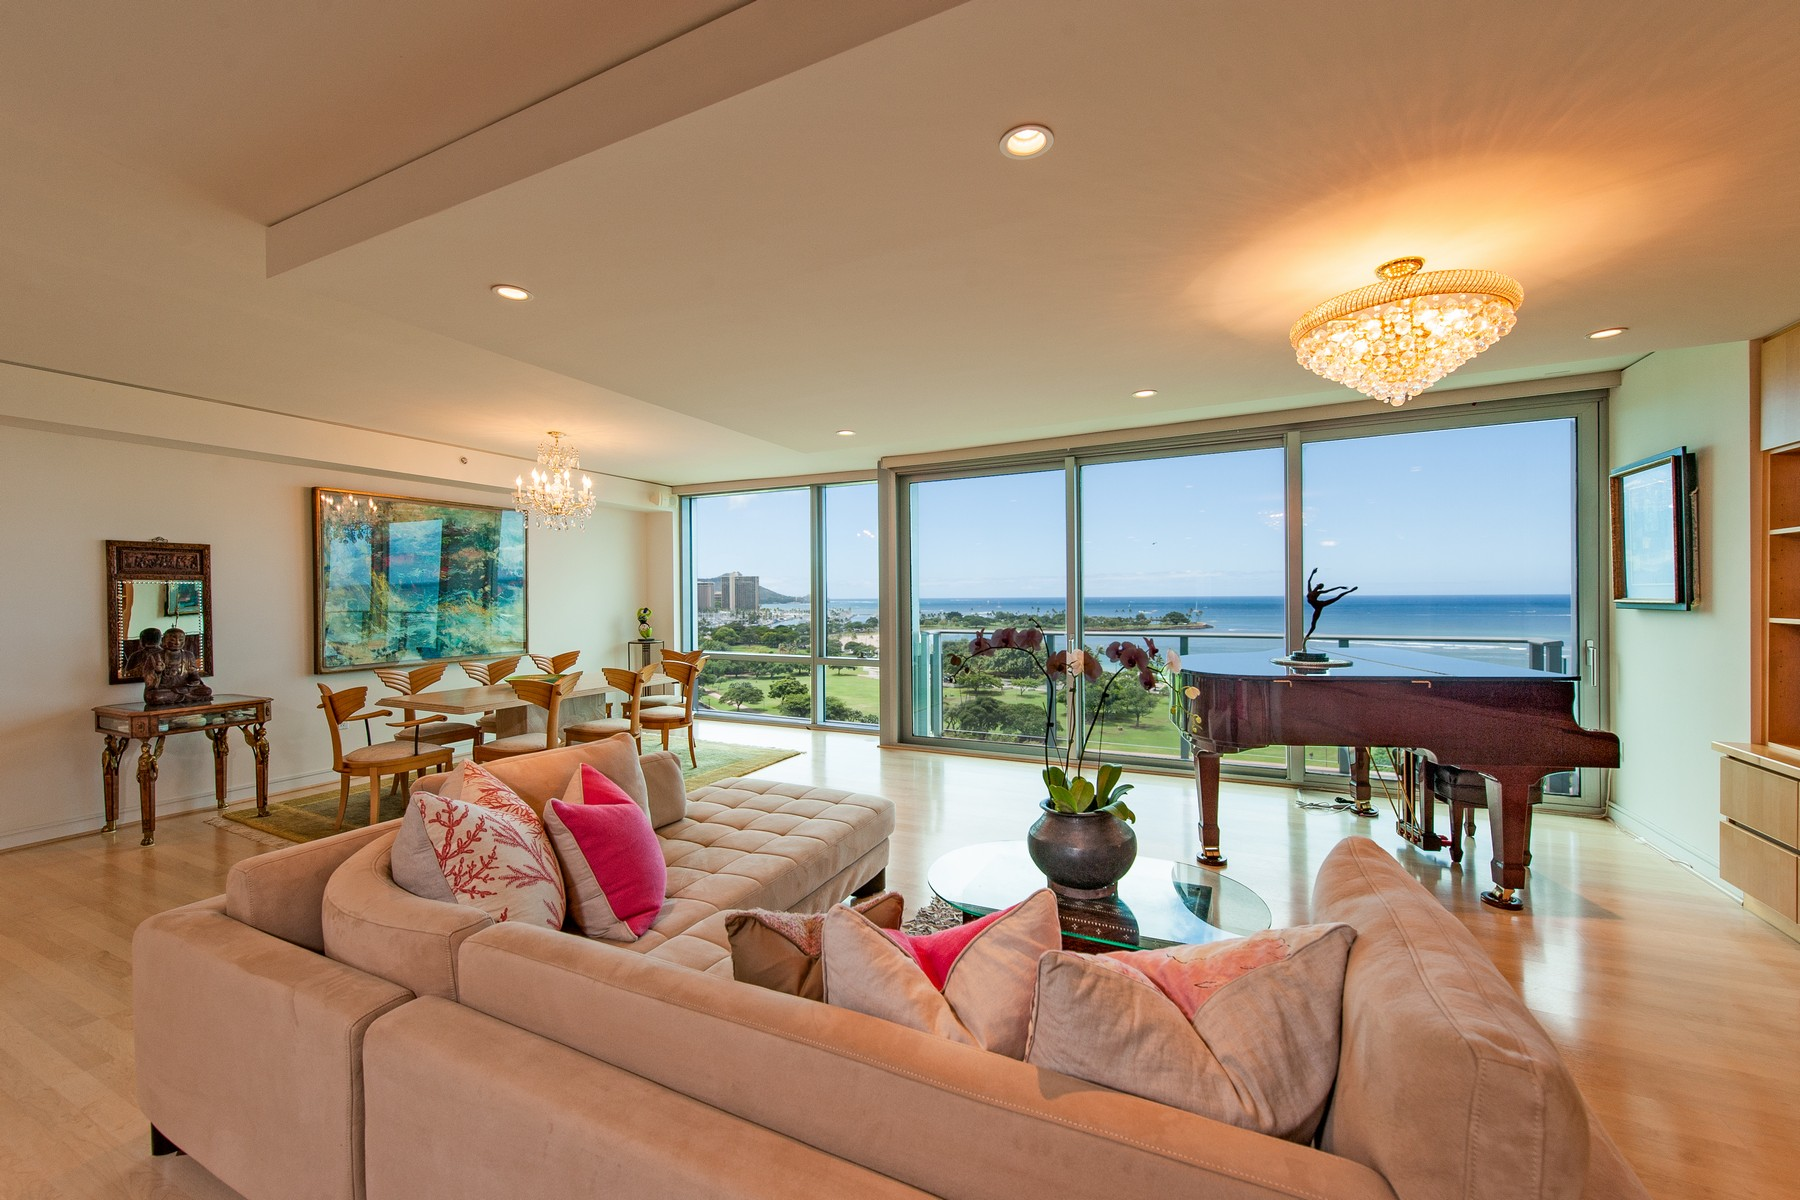 Condominium for Sale at Spectacular Ocean View Condo 1288 Ala Moana Blvd #12E & 12F Honolulu, Hawaii, 96814 United States